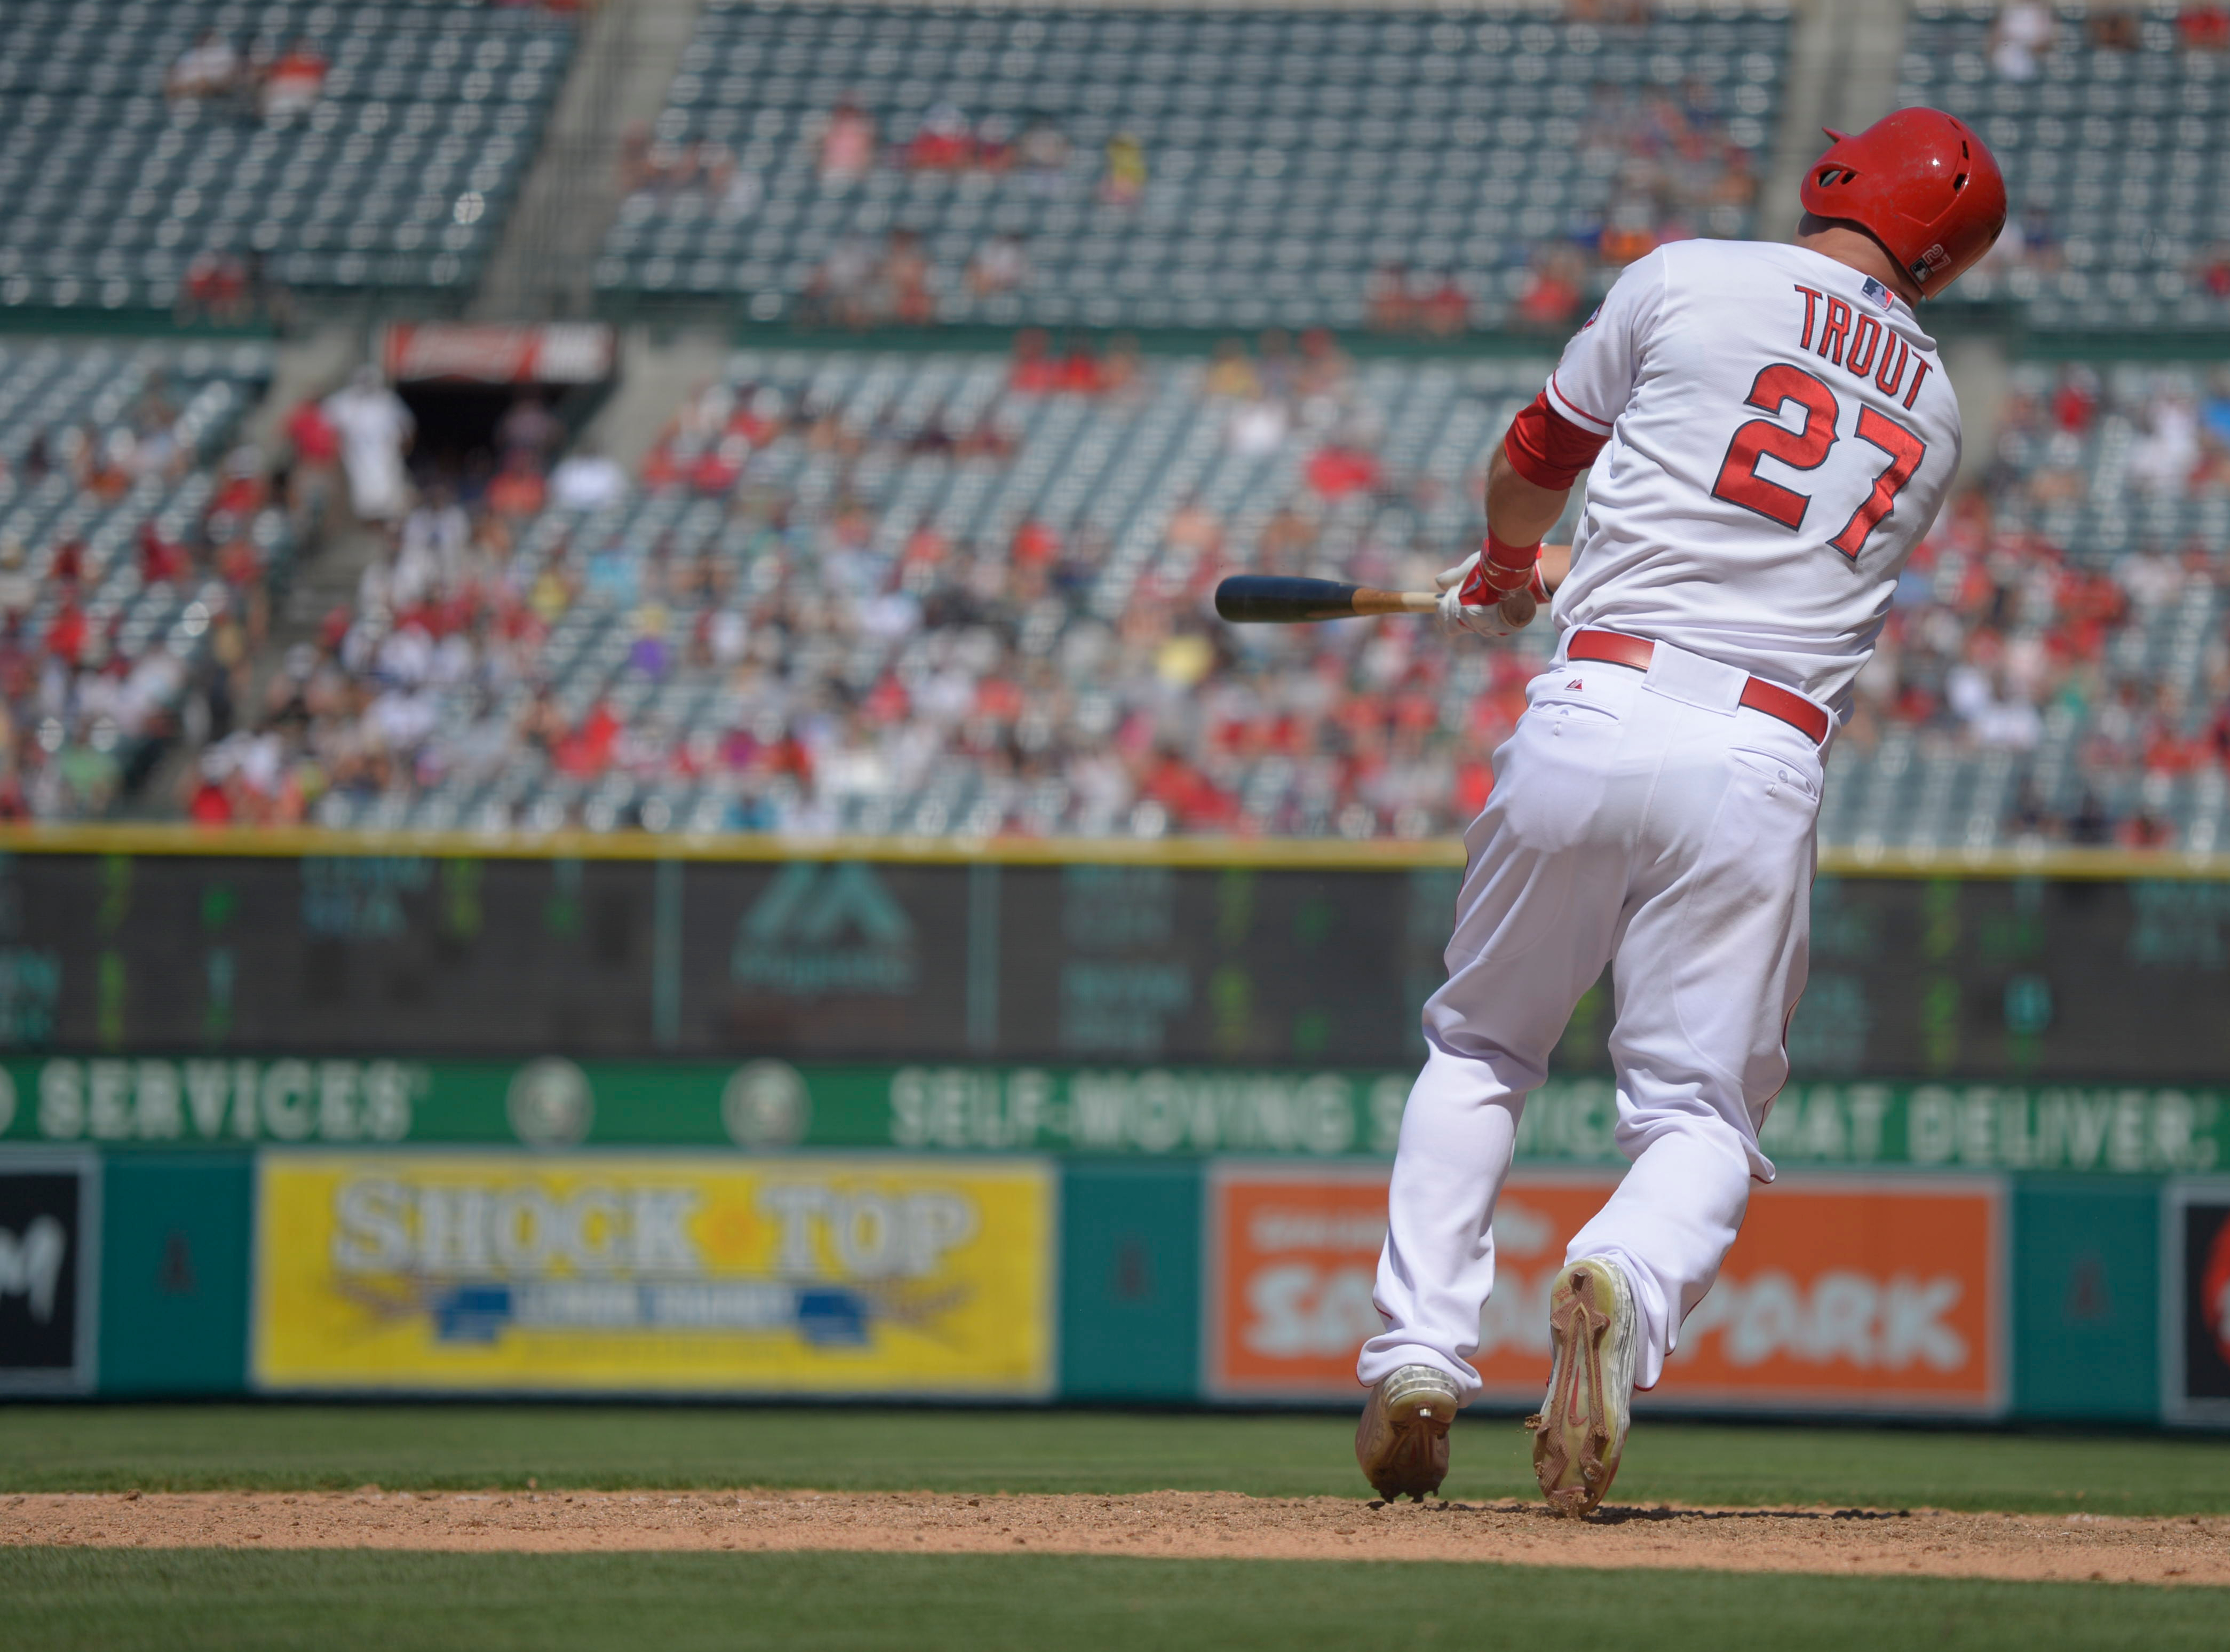 Boston Red Sox vs Los Angeles Angels of Anaheim